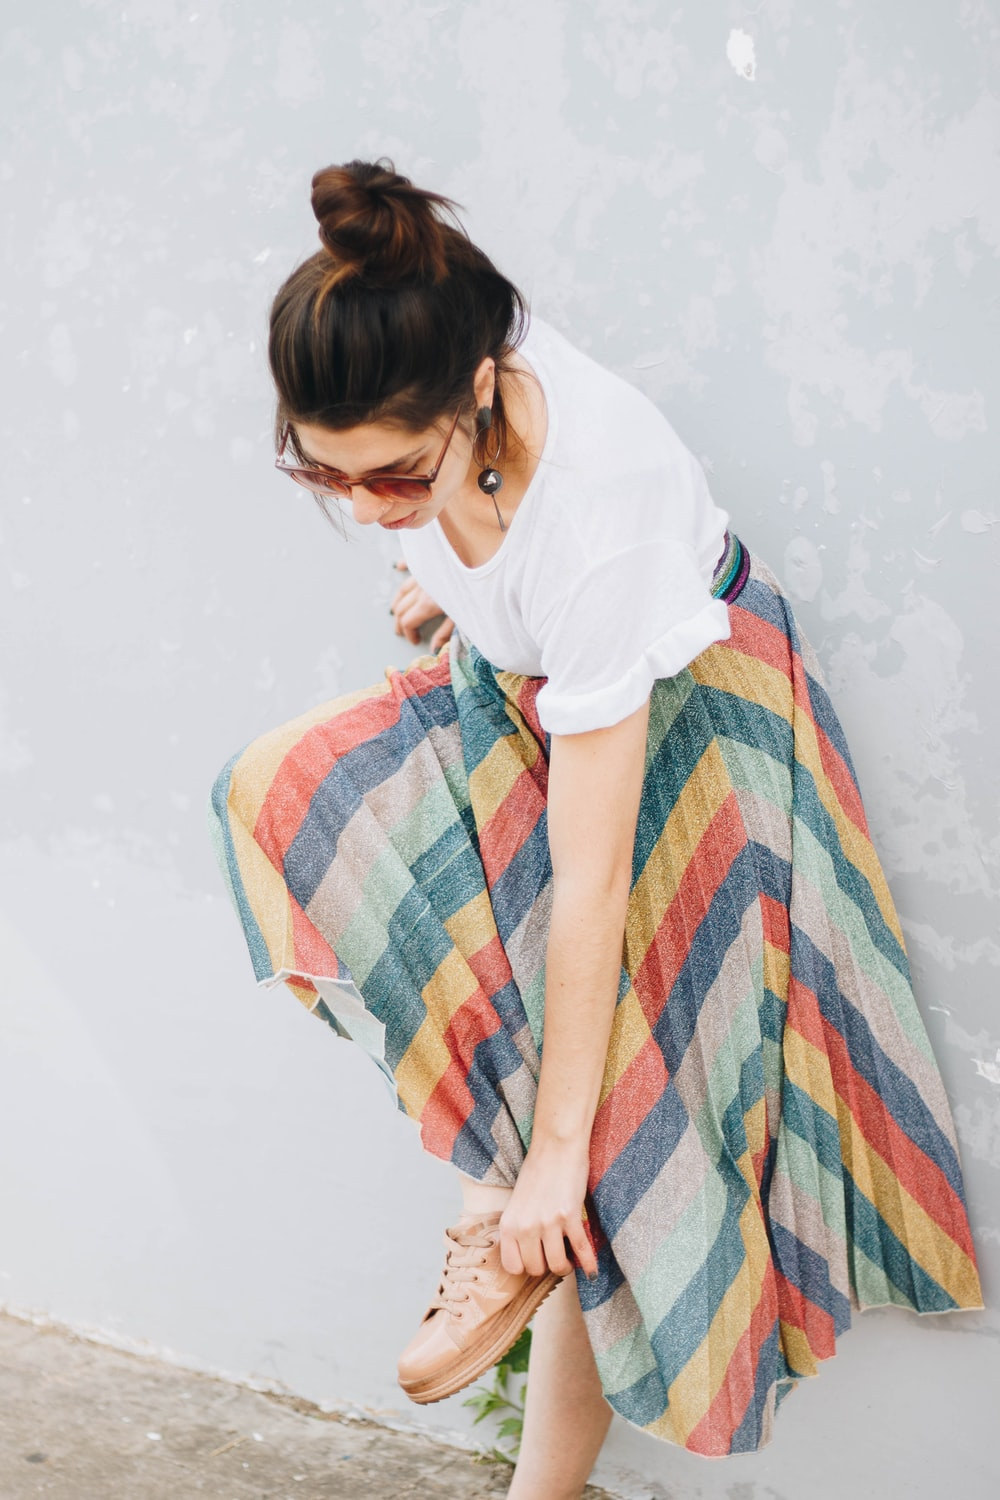 woman wearing white shirt and yellow, blue, and green striped long skirt